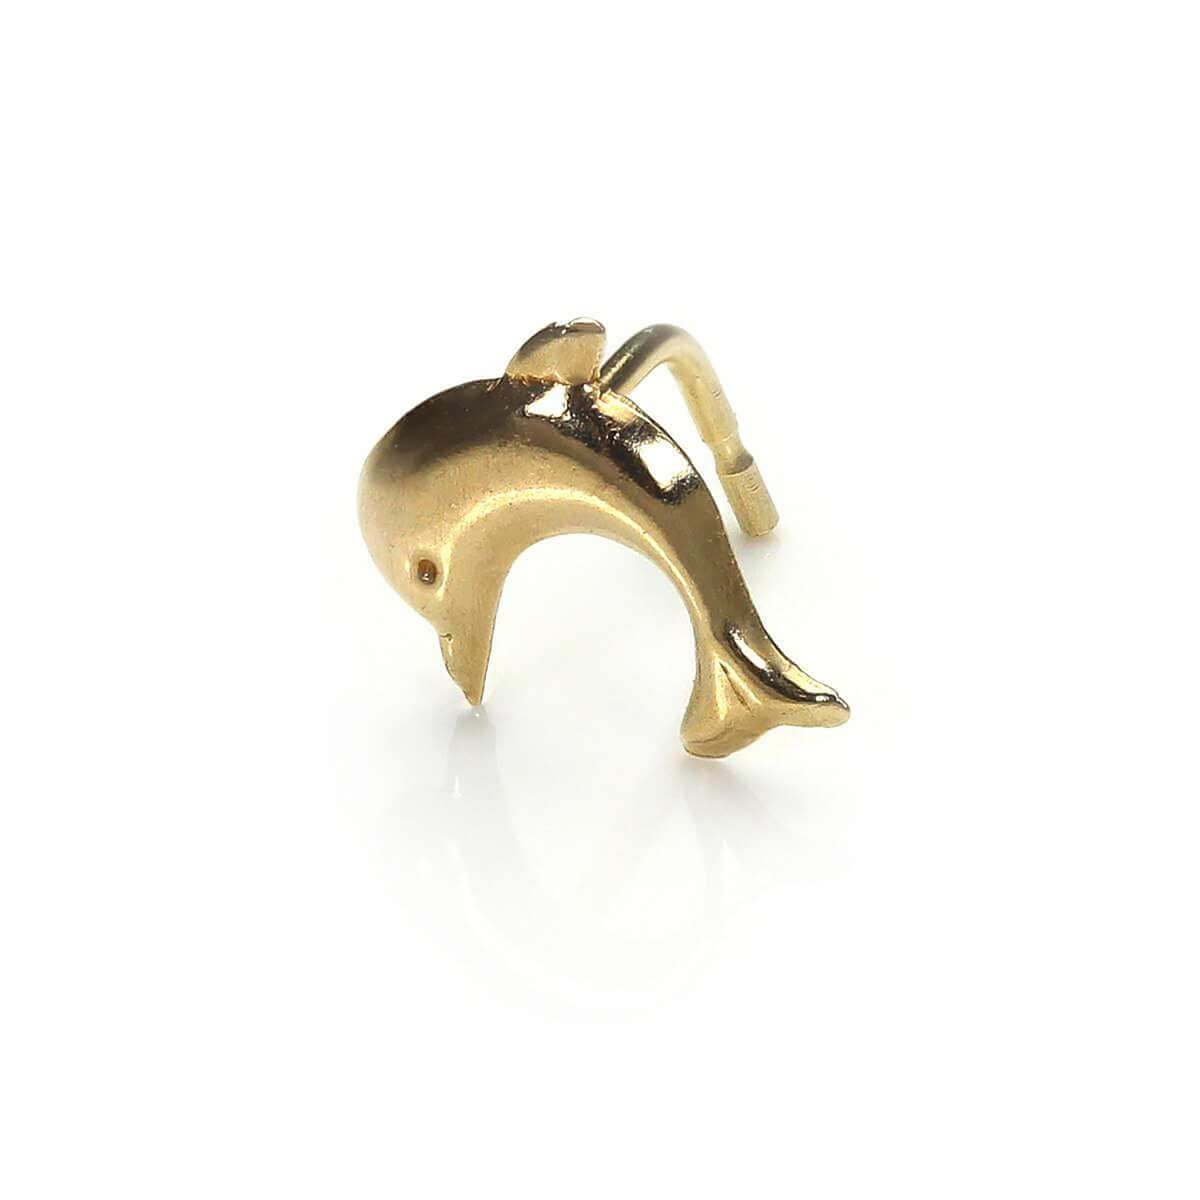 9ct Yellow Gold Dolphin L-Shaped Nose Stud